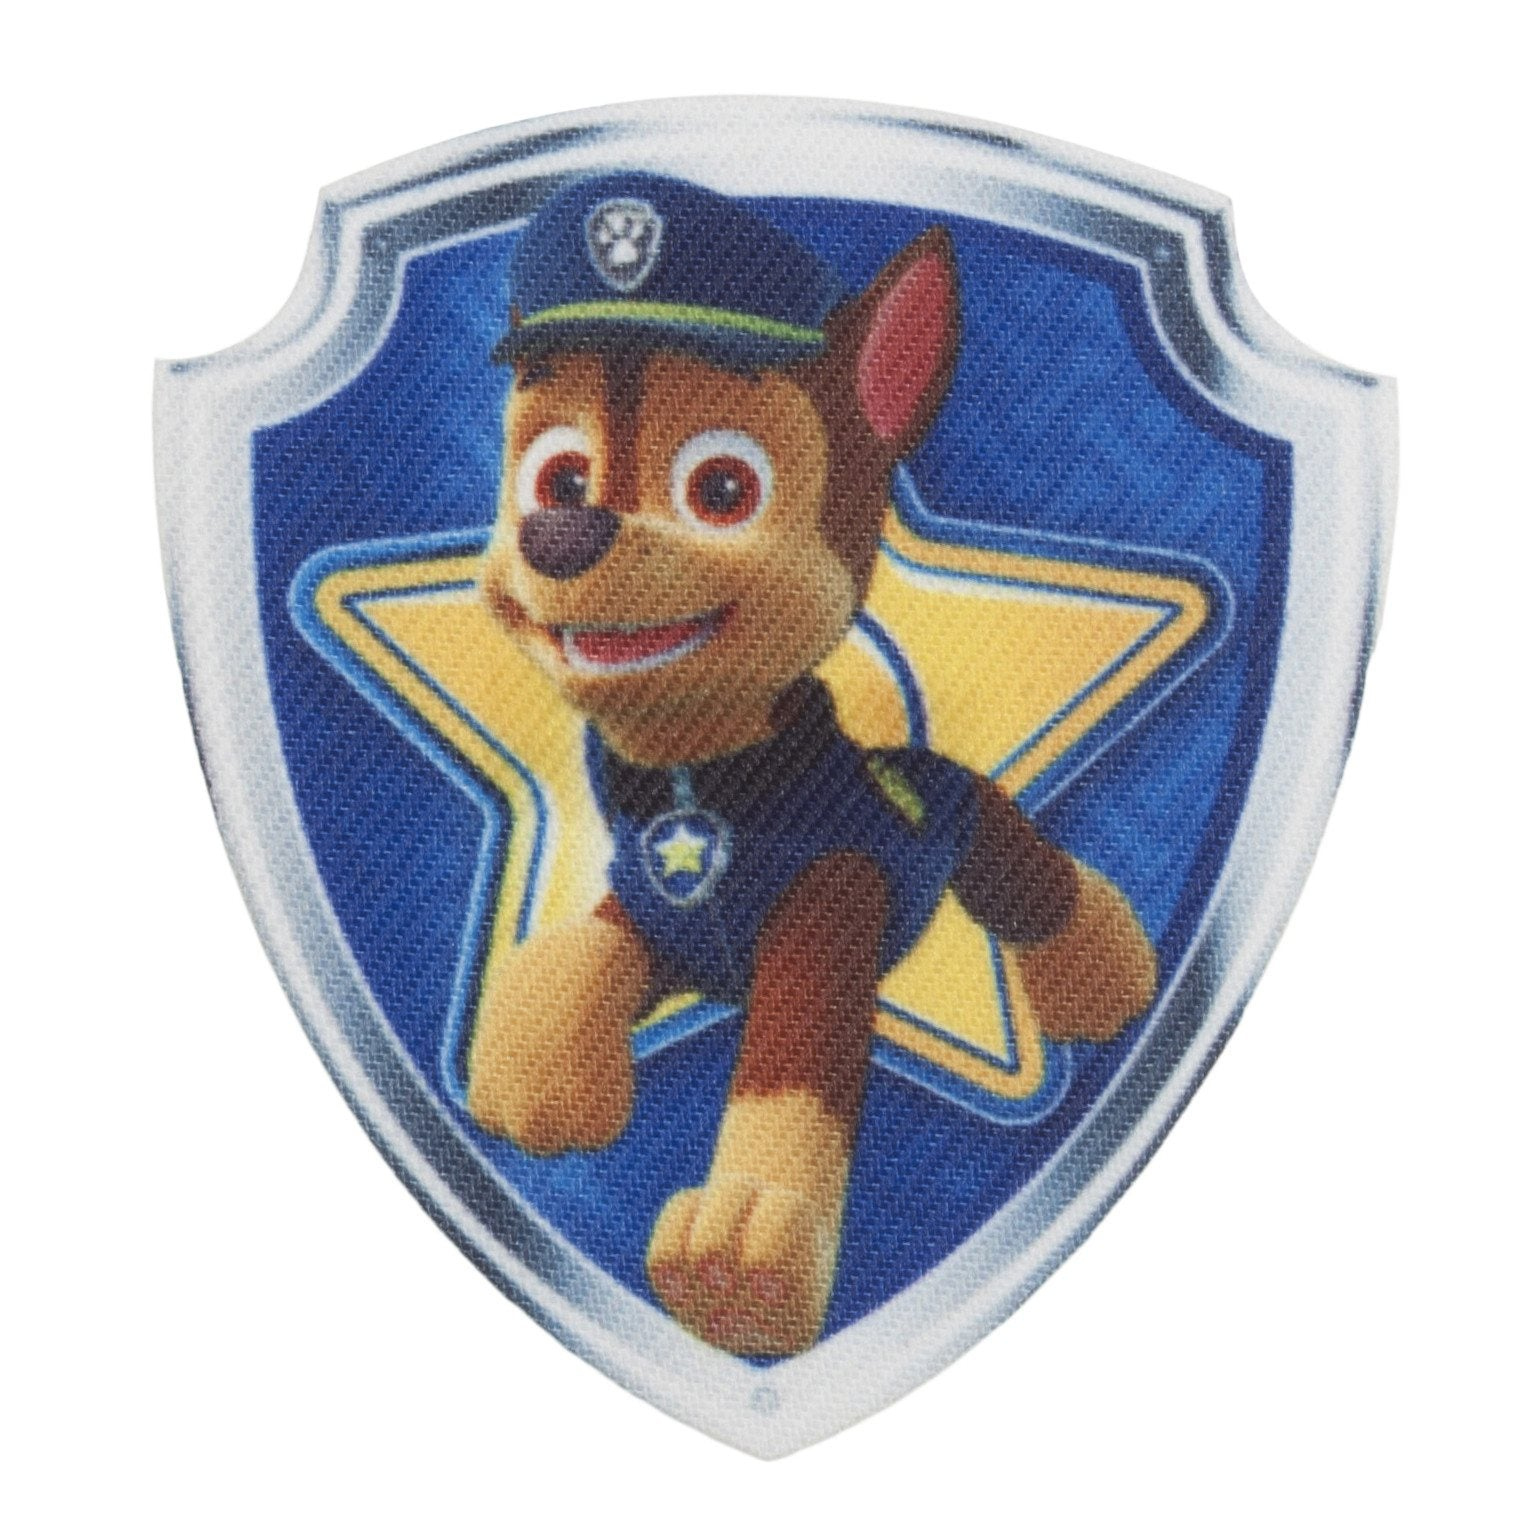 Character Cloth Badges - Paw Patrol: Chase Shield